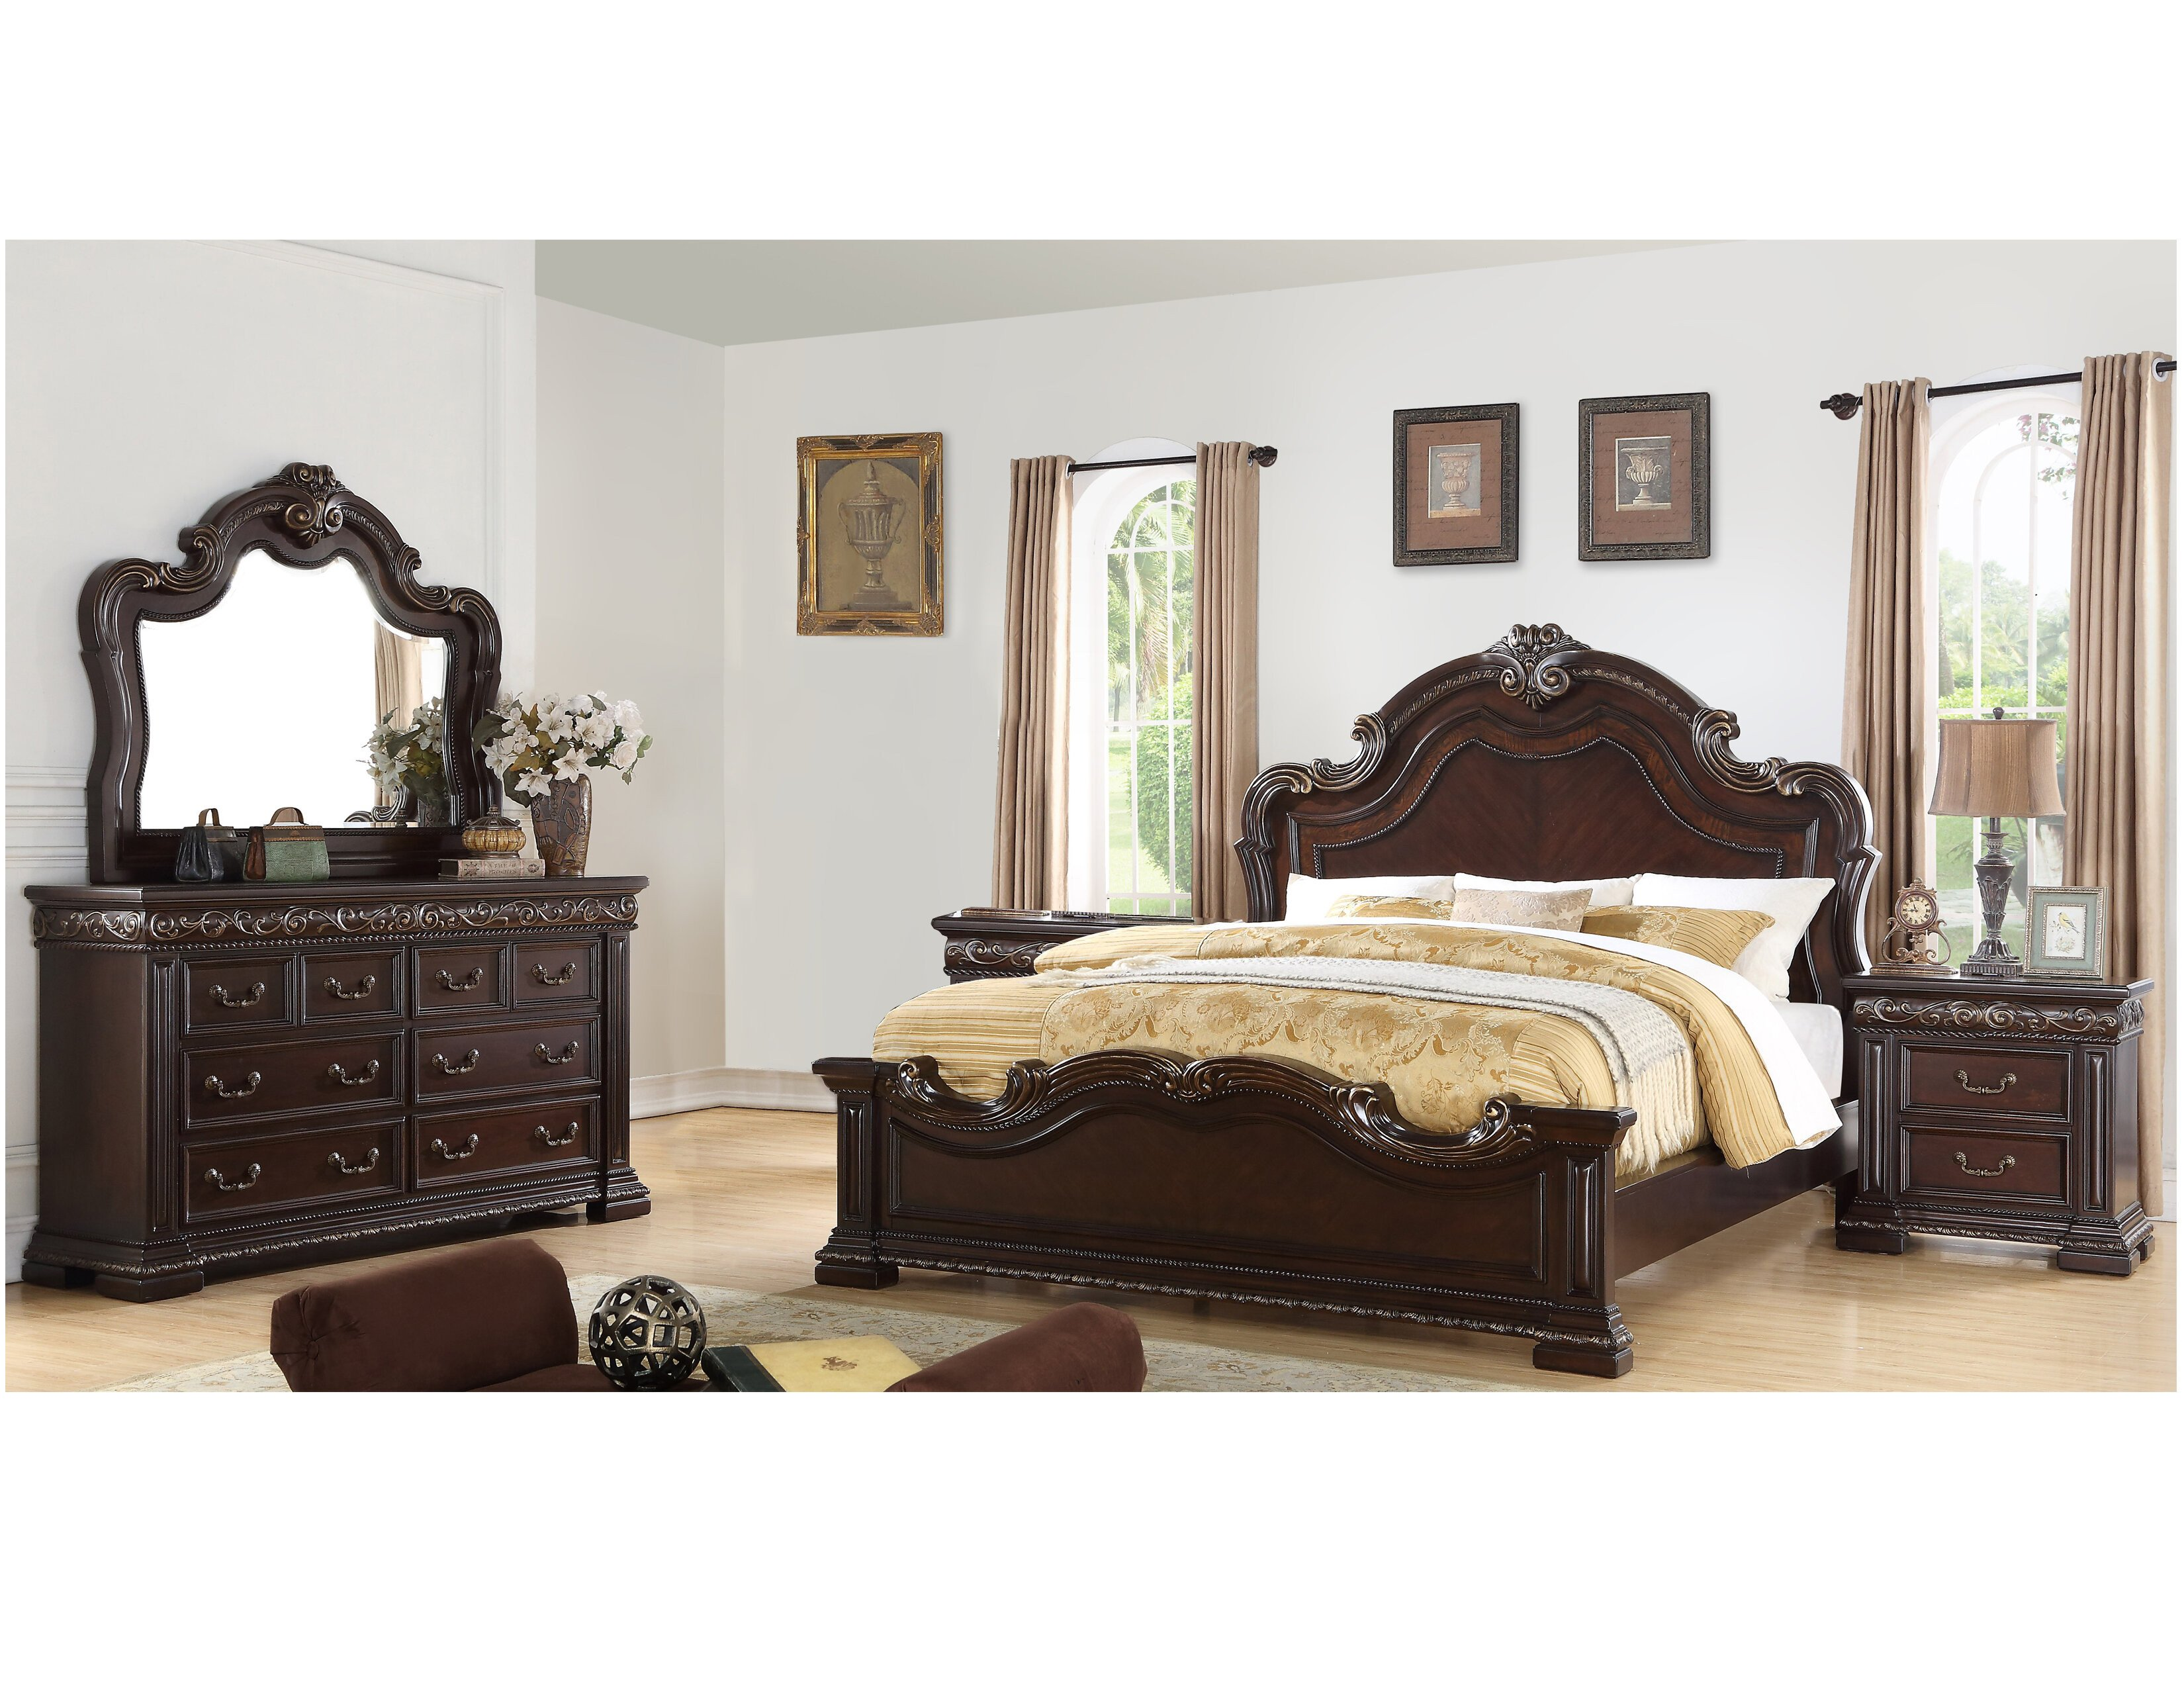 Classic Italian Bedroom Furniture Best Of Bannruod Standard solid Wood 5 Piece Bedroom Set